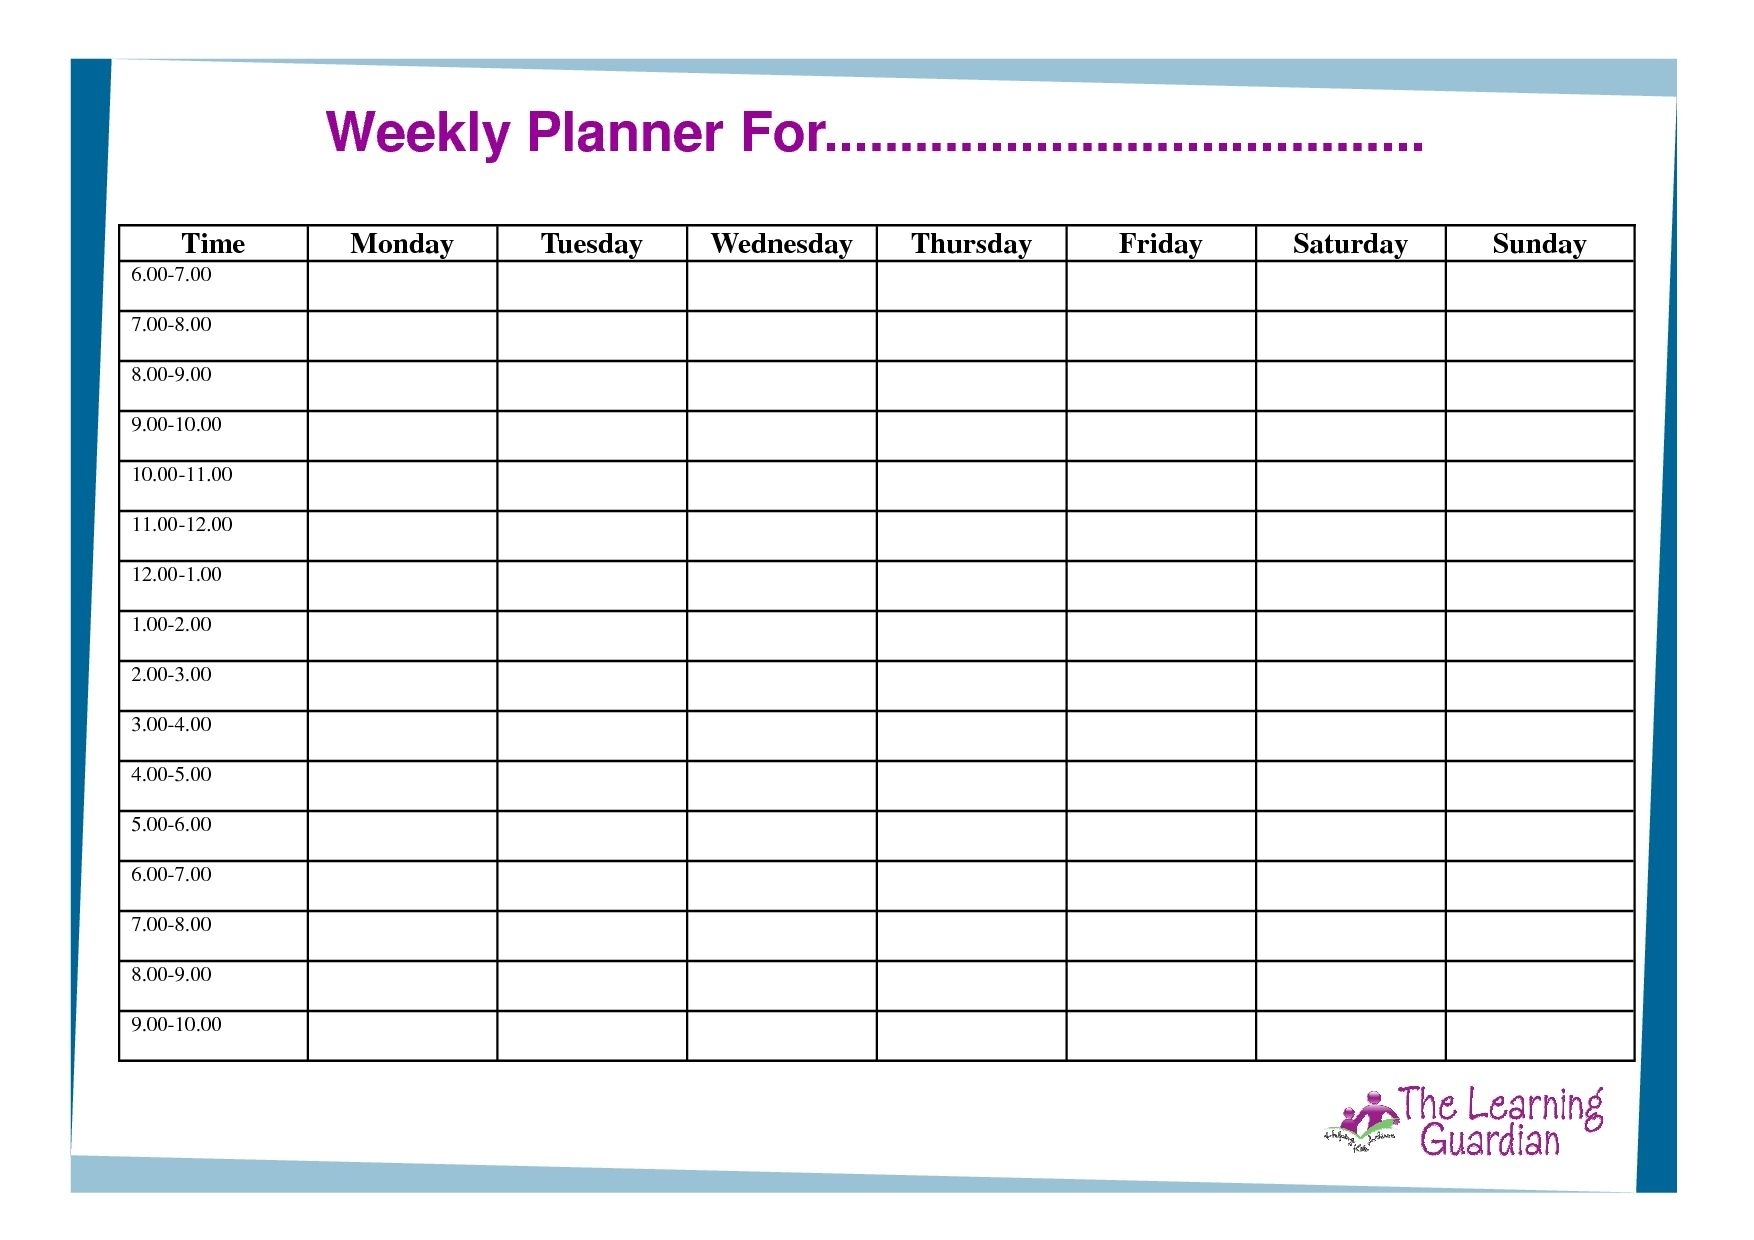 Free Printable Weekly Calendar Templates Planner For Time Incredible for Free Seven Day Printable Calendar